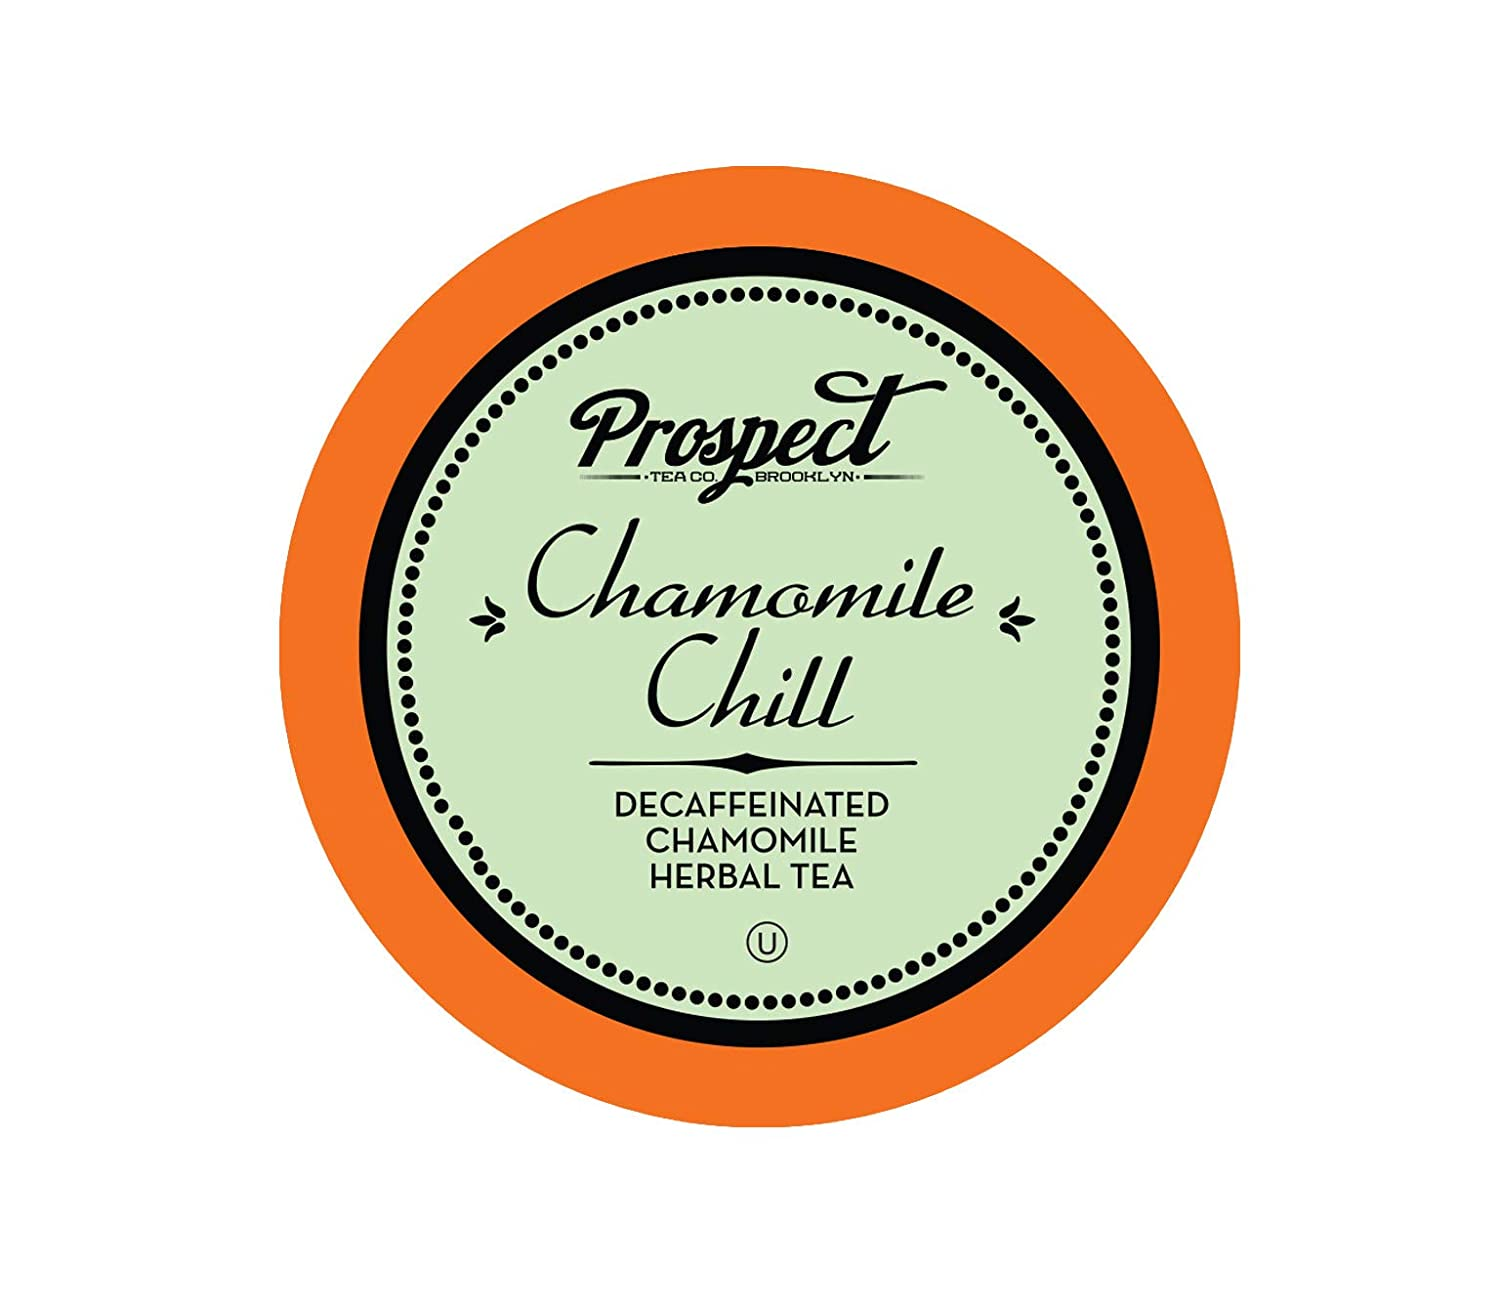 Prospect Tea DecaffeinatedChamomile Chill Herbal Tea Pods for Keurig K-Cup Makers, 40 Count